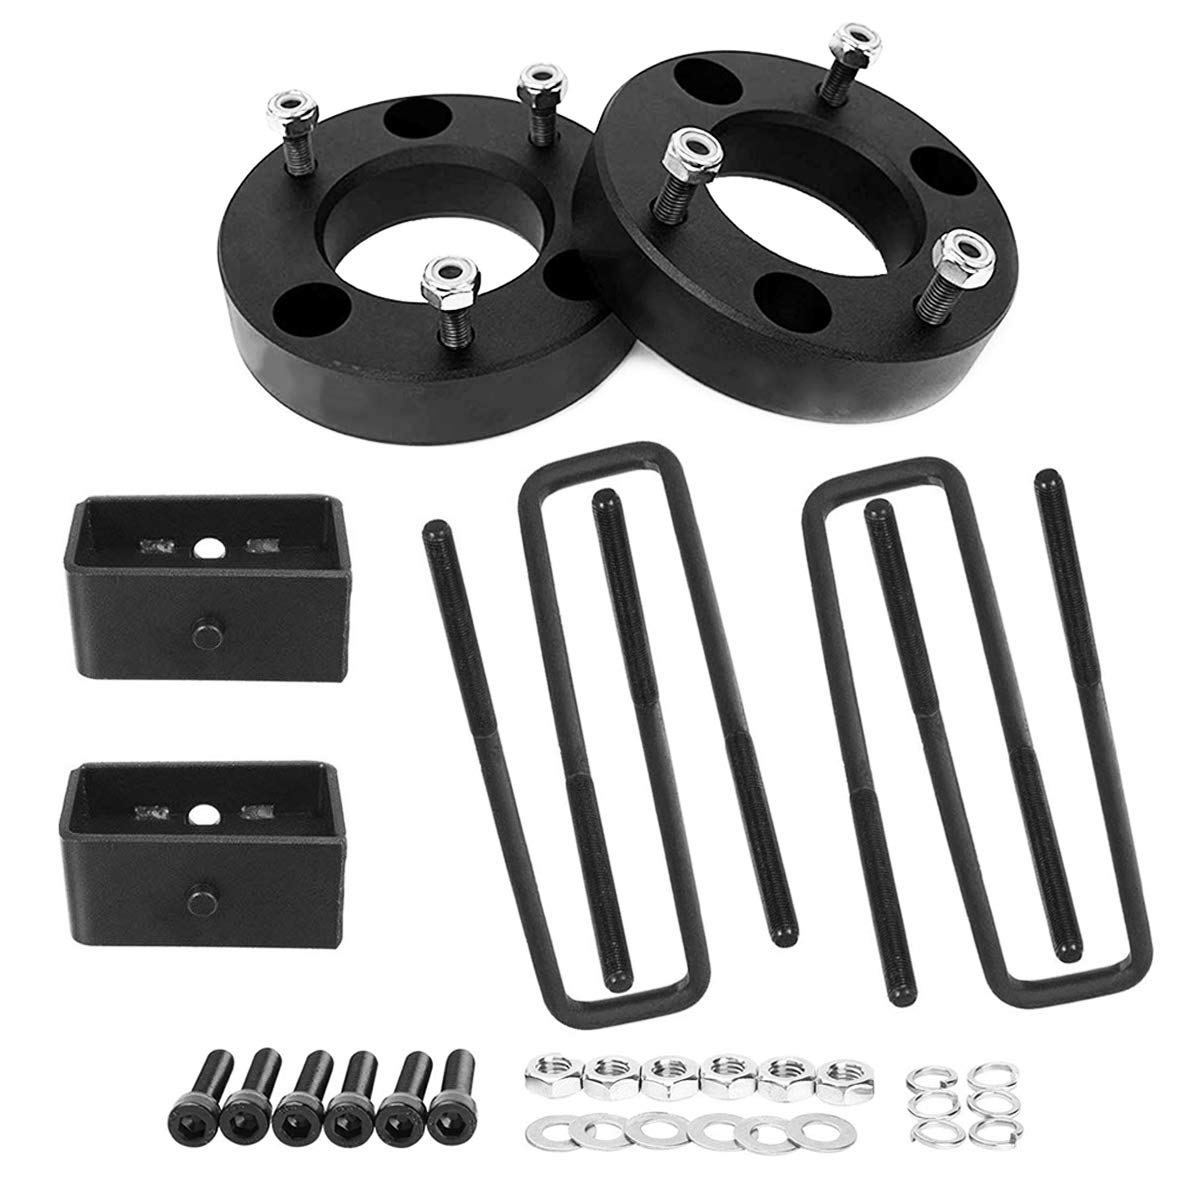 Autoxrun U-Bolts Kit Fits 2007-2018 Chevy Silverado GMC Sierra Front 3 Leveling Lift Spacer and 2 Rear Lift Block